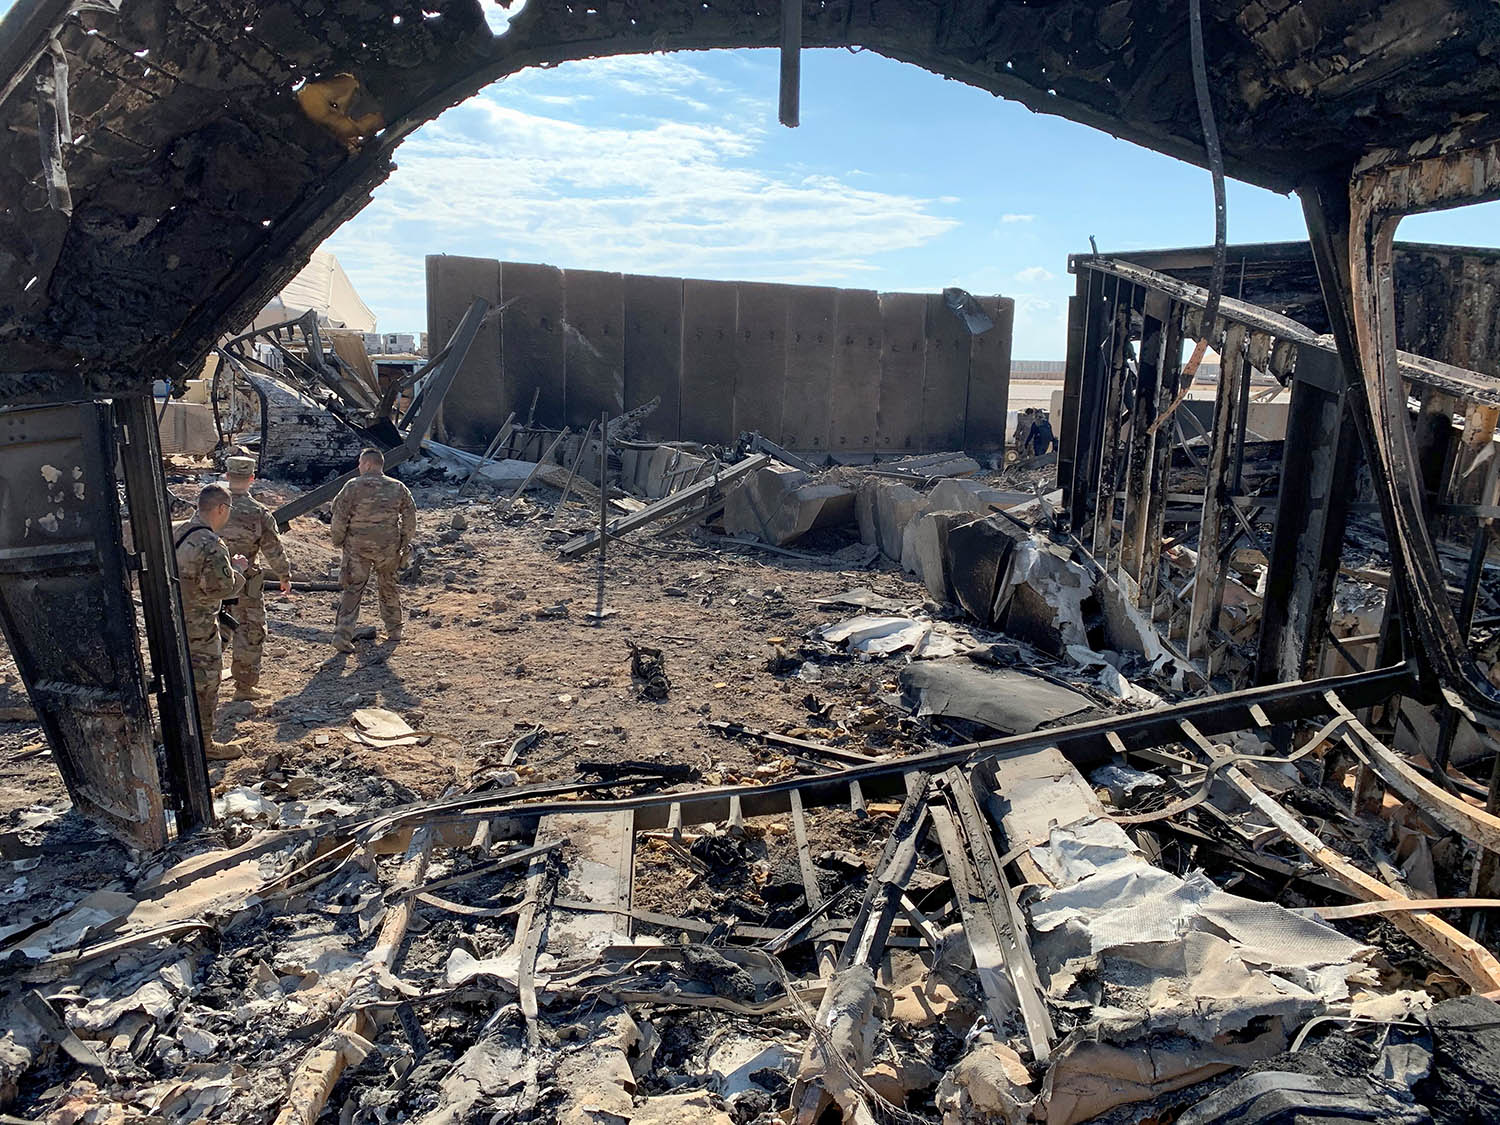 A view of the damage at Ain al-Asad military airbase housing U.S. and other foreign troops after Iranian missile attacks in the western Iraqi province of Anbar on Jan. 13.